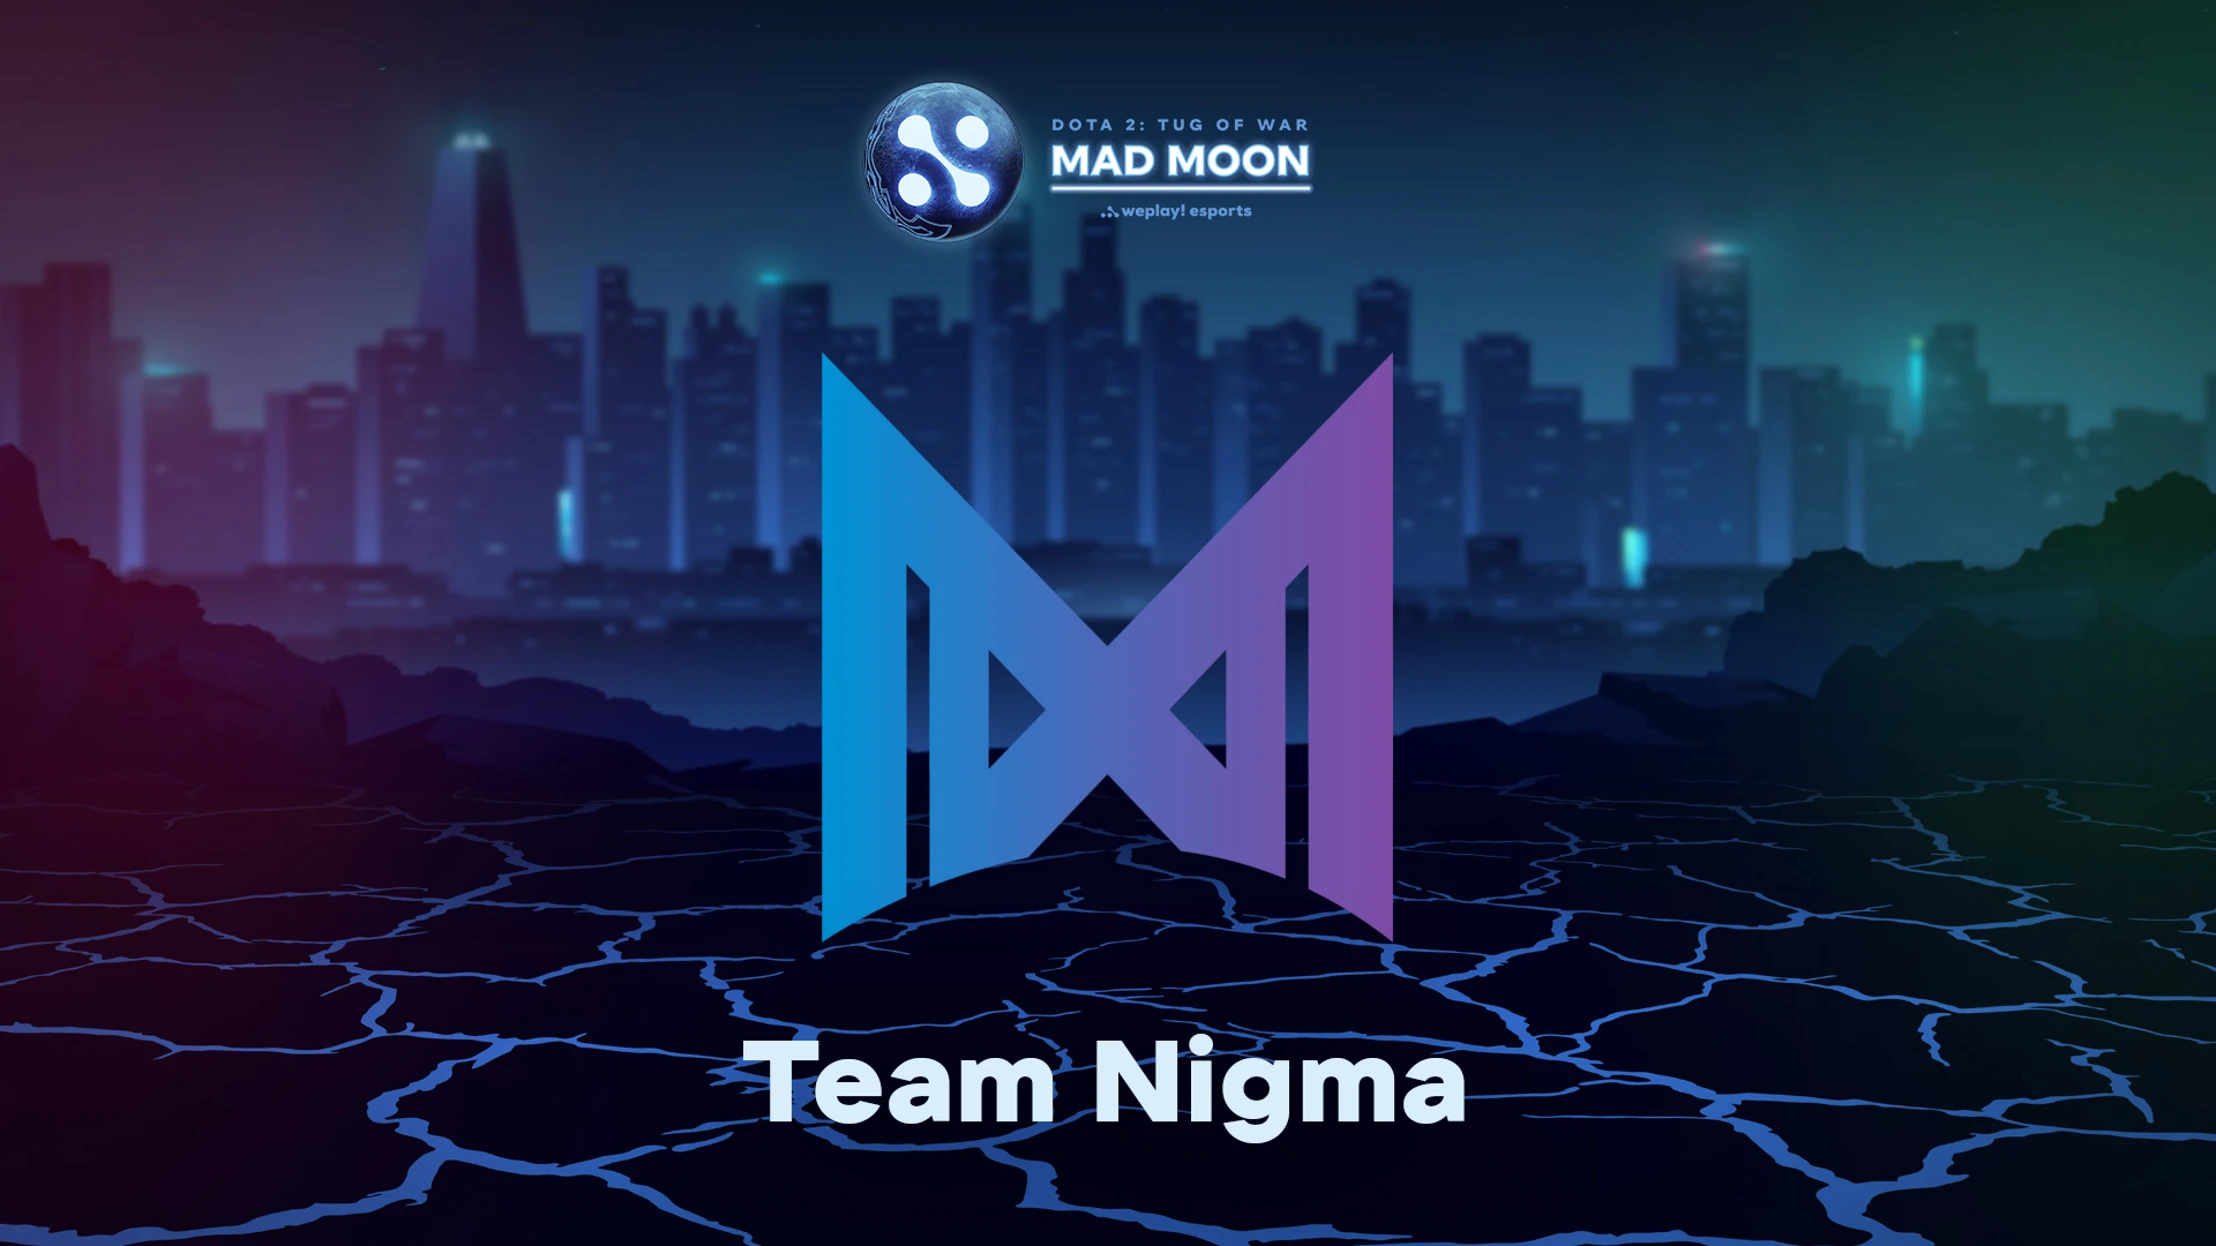 Team Nigma to play at WePlay! Mad Moon